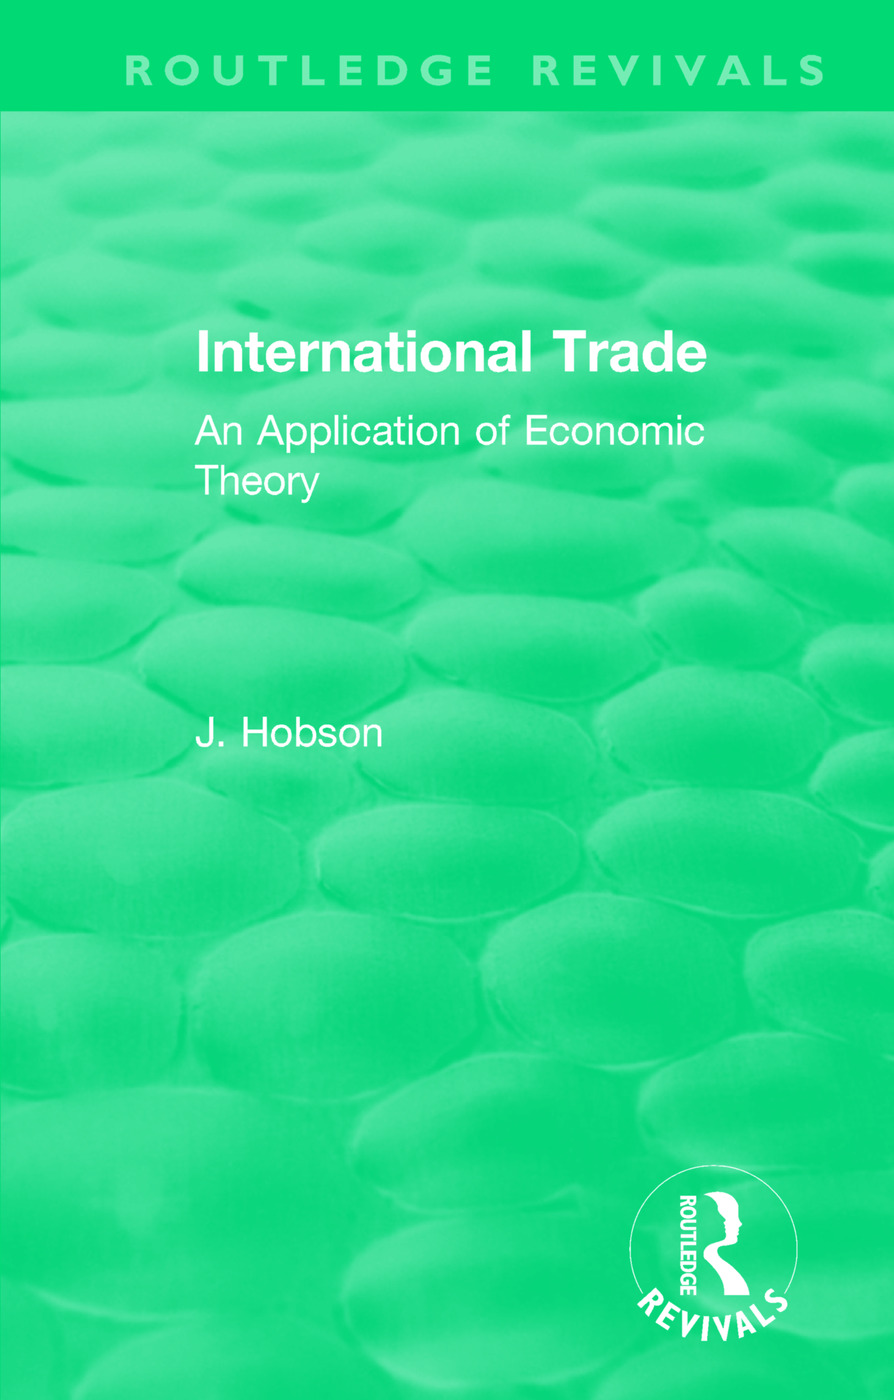 International Trade (Routledge Revivals): An Application of Economic Theory (Hardback) book cover